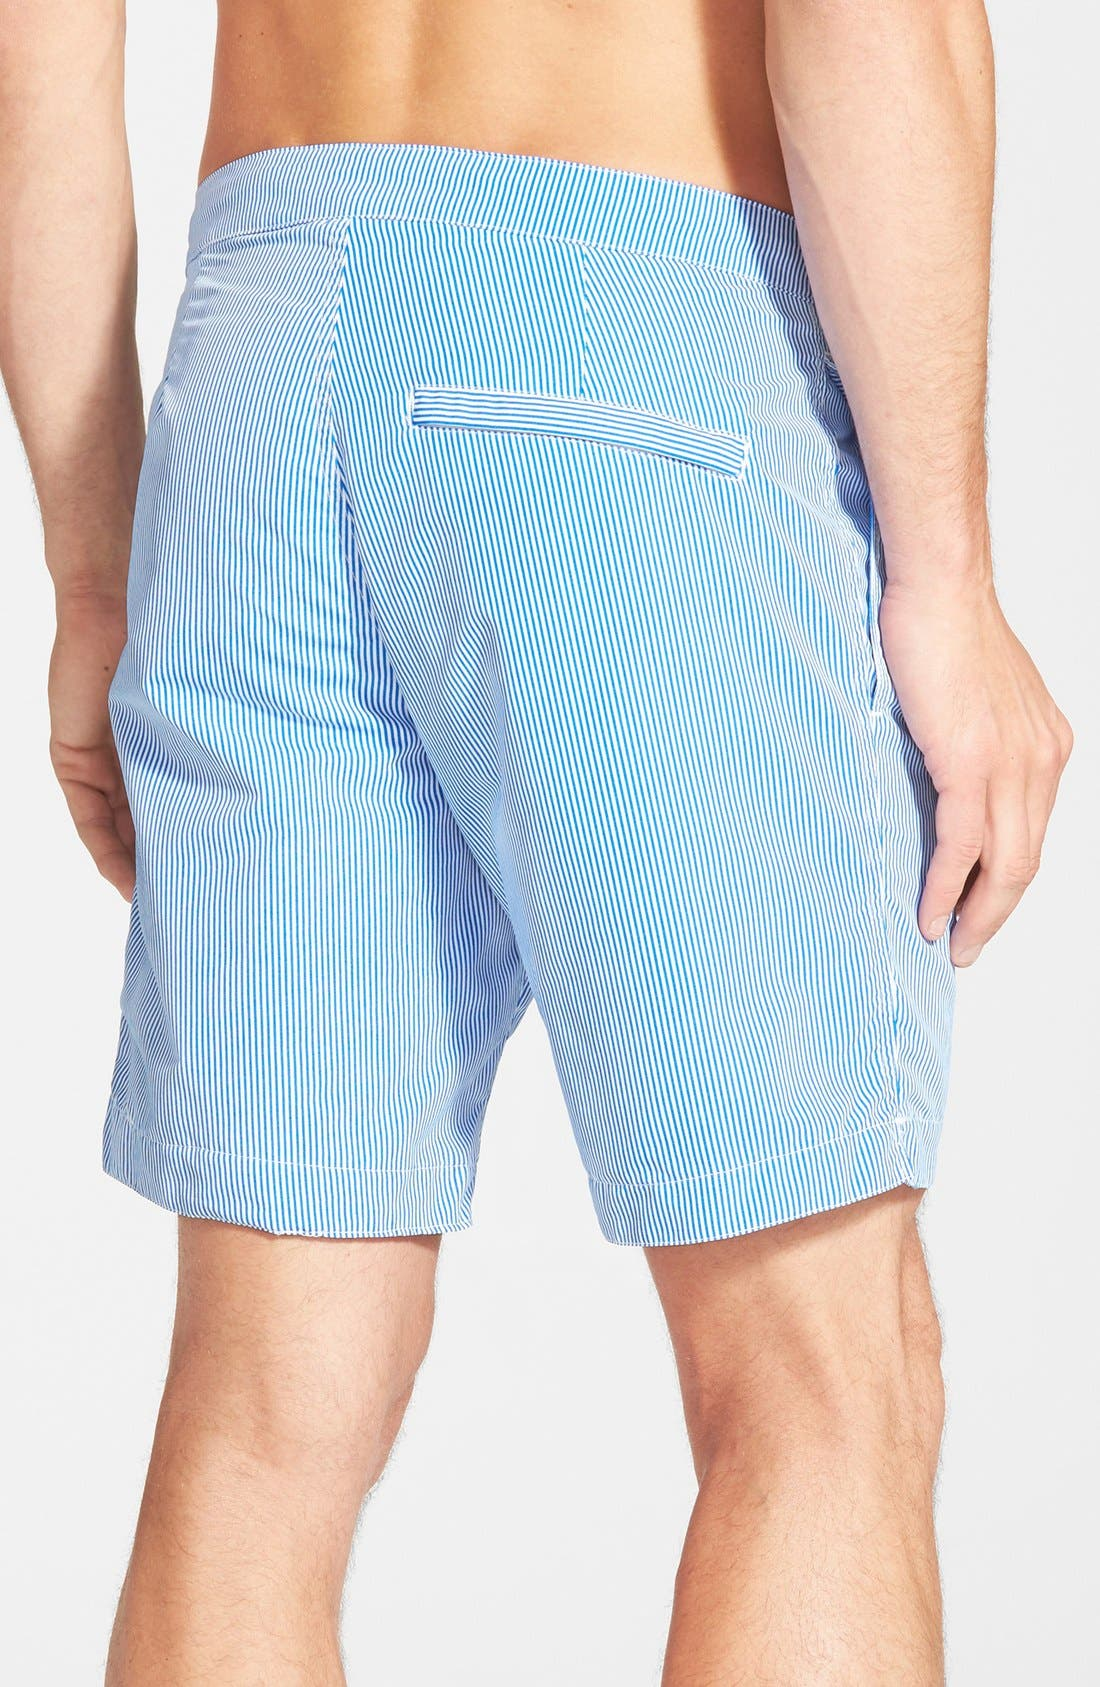 'Aruba - Stripe' Tailored Fit 8.5 Inch Board Shorts,                             Alternate thumbnail 2, color,                             400